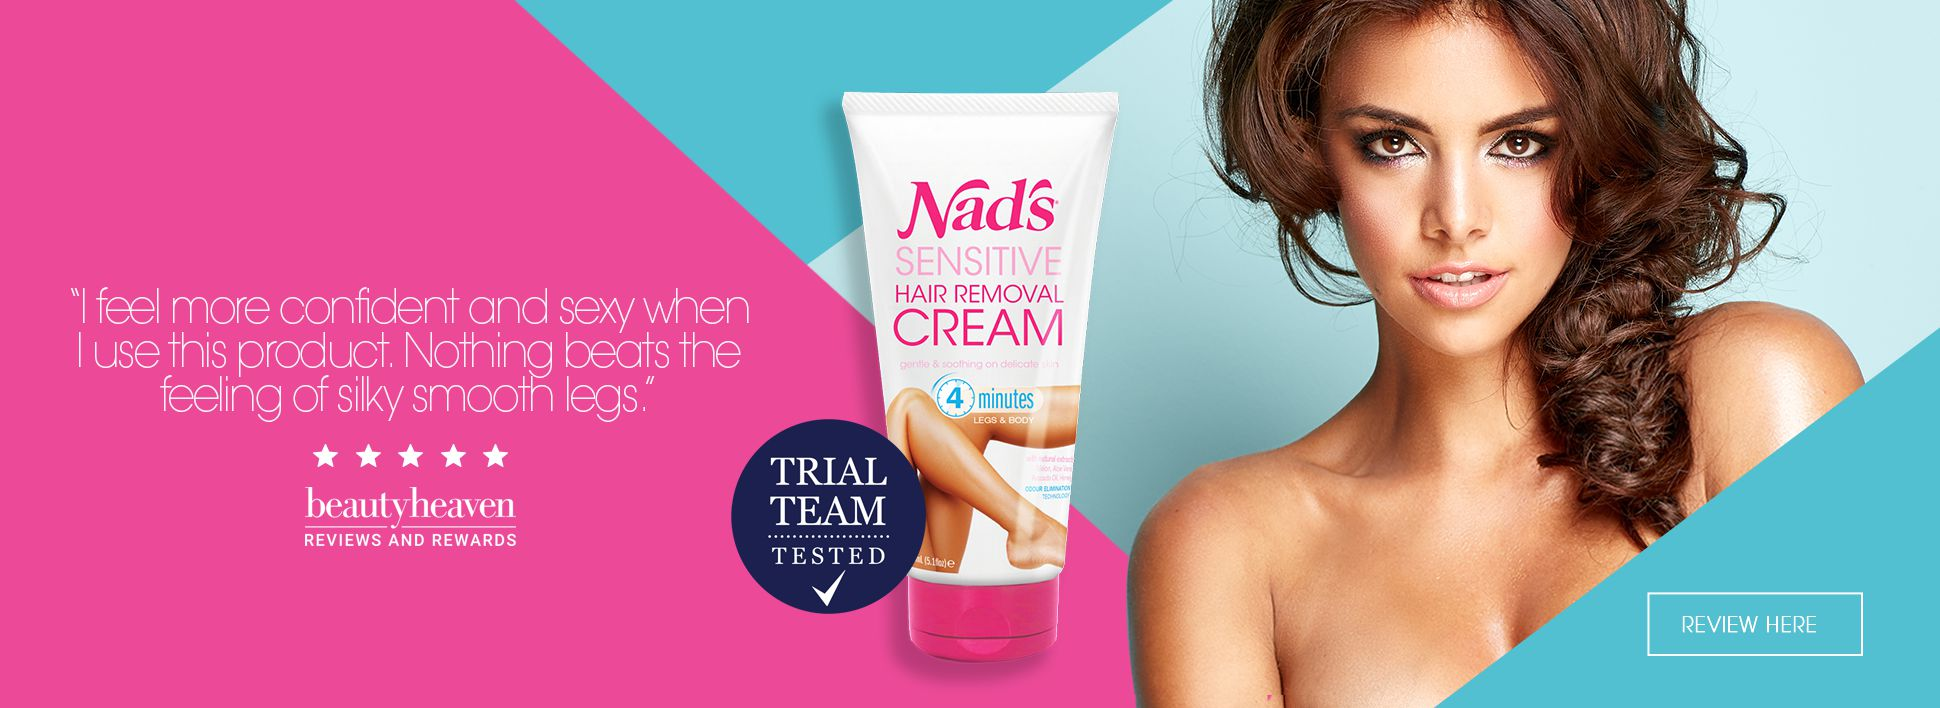 Nad's New Sensitive Hair Removal Cream Reviews